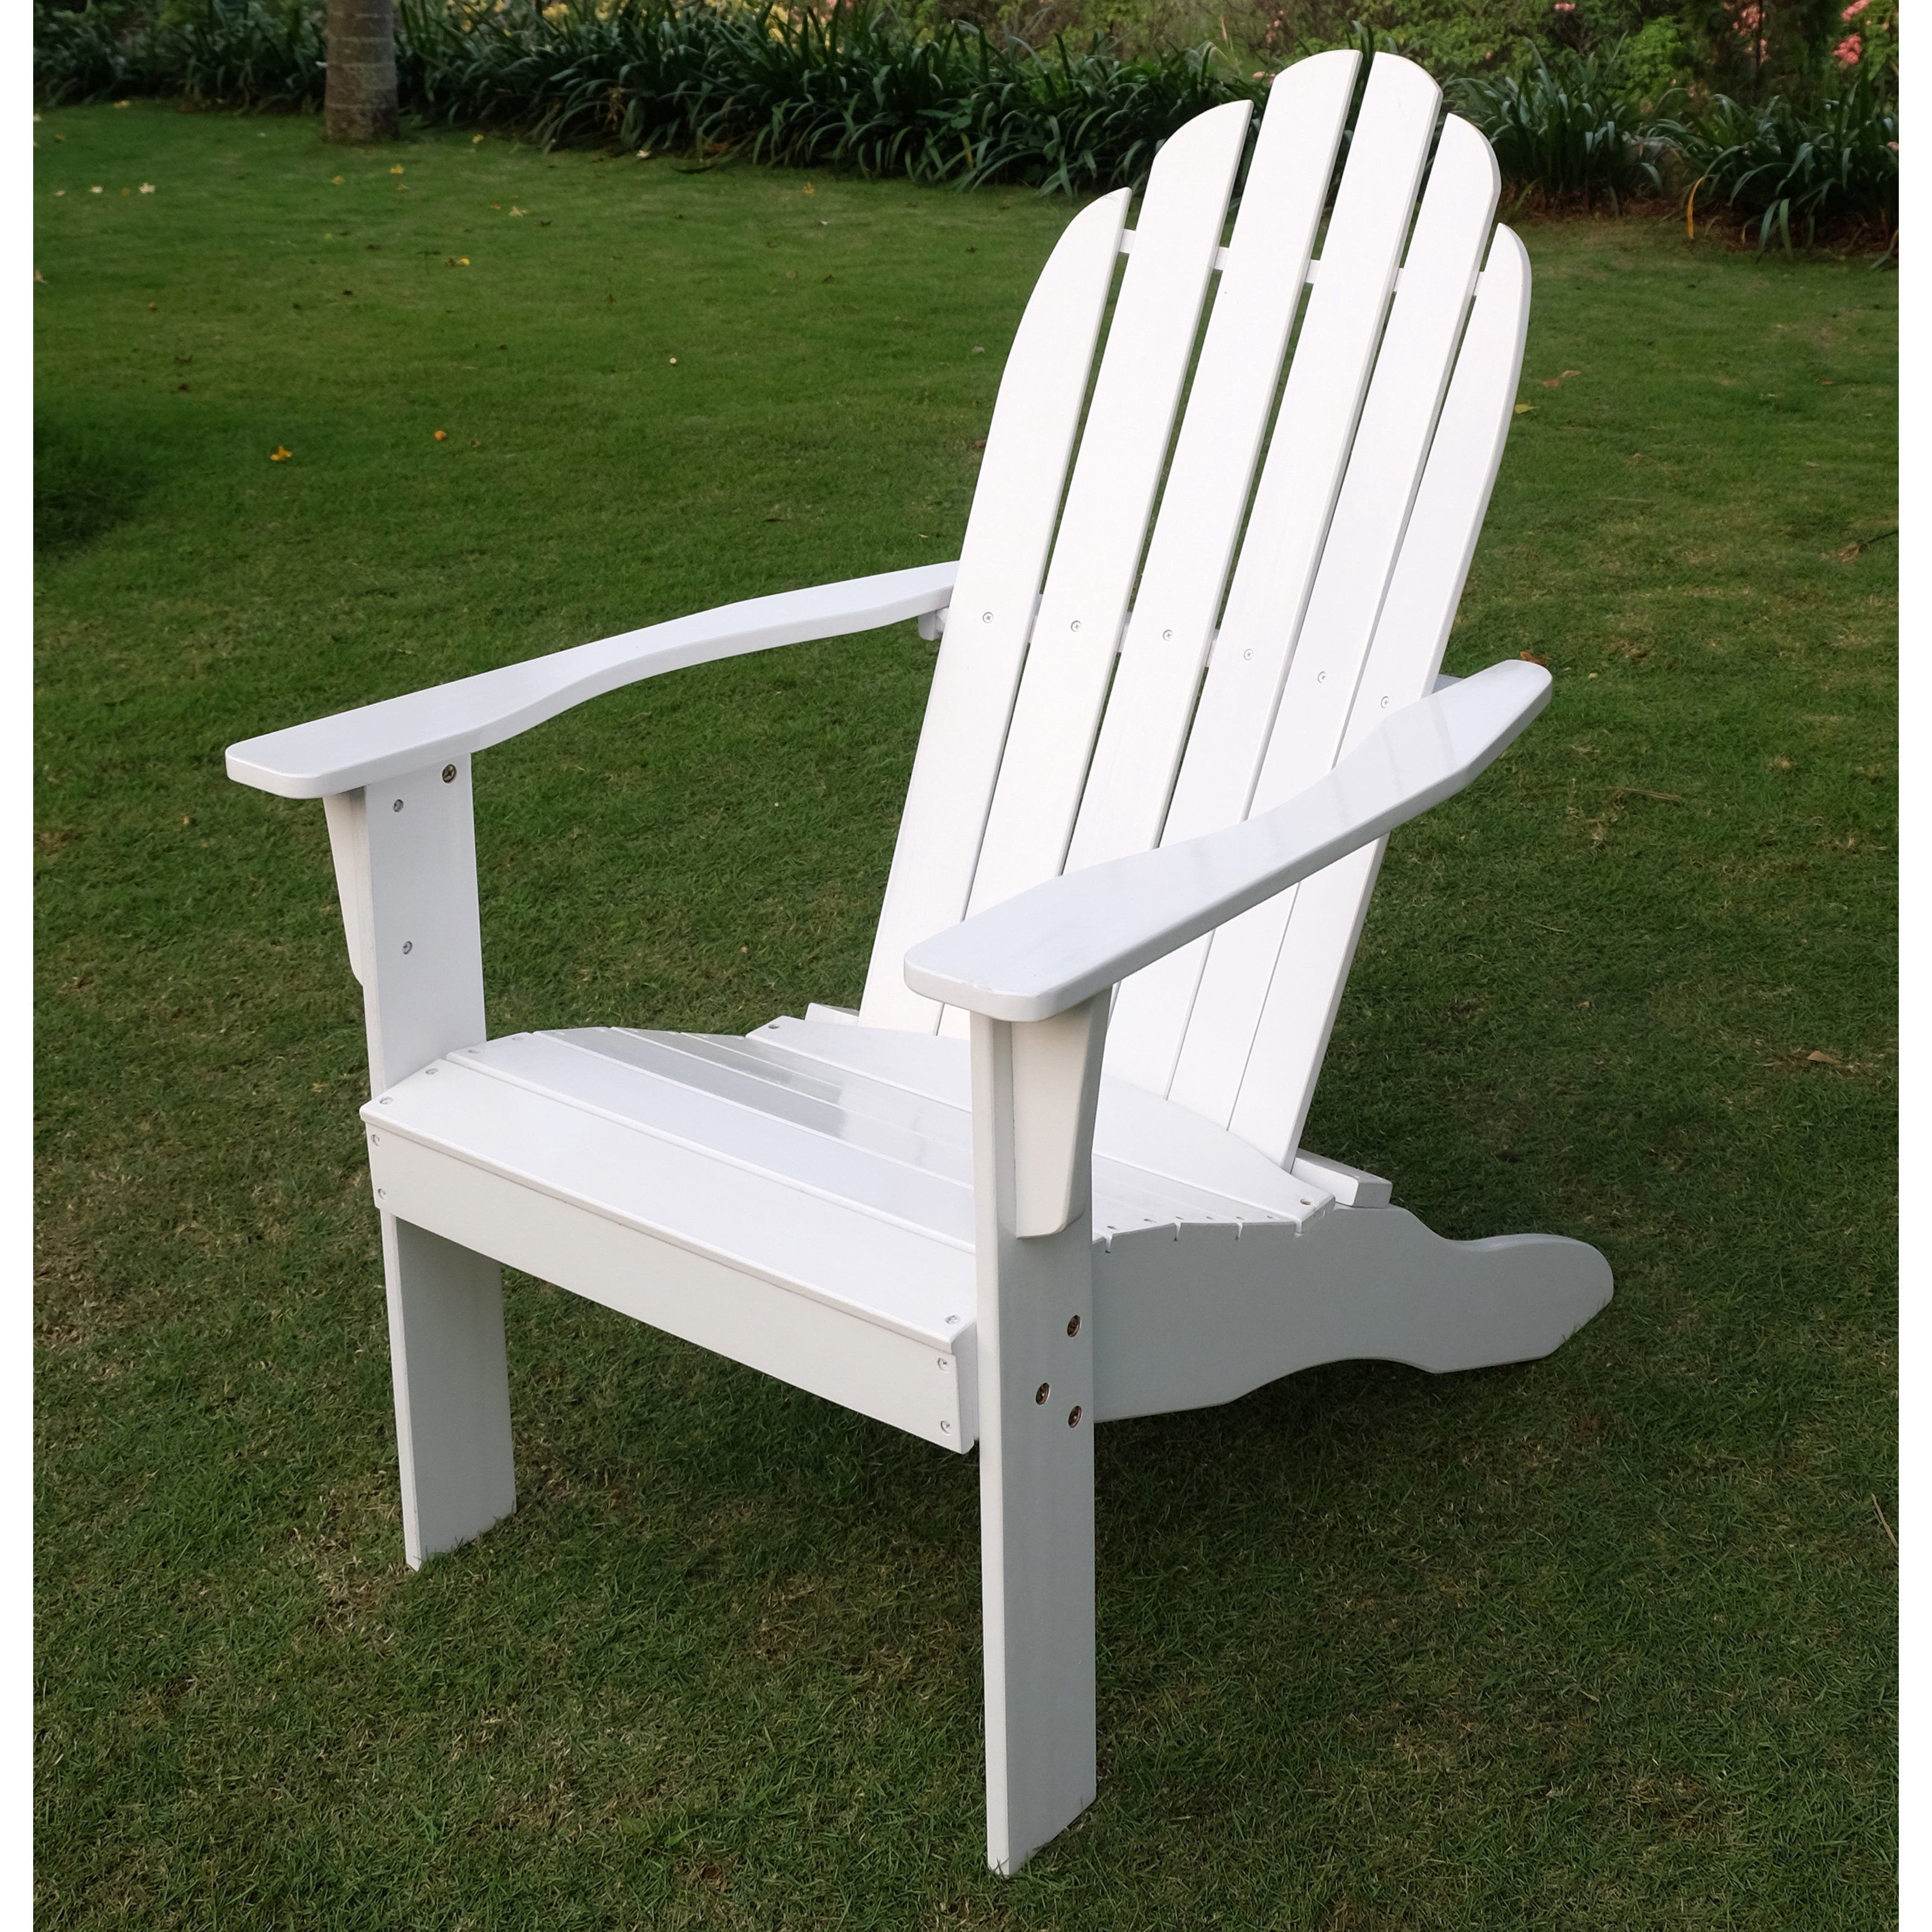 Miraculous Outdoor Cambridge Casual Wood Adirondack Chair Cc 240252 Bralicious Painted Fabric Chair Ideas Braliciousco